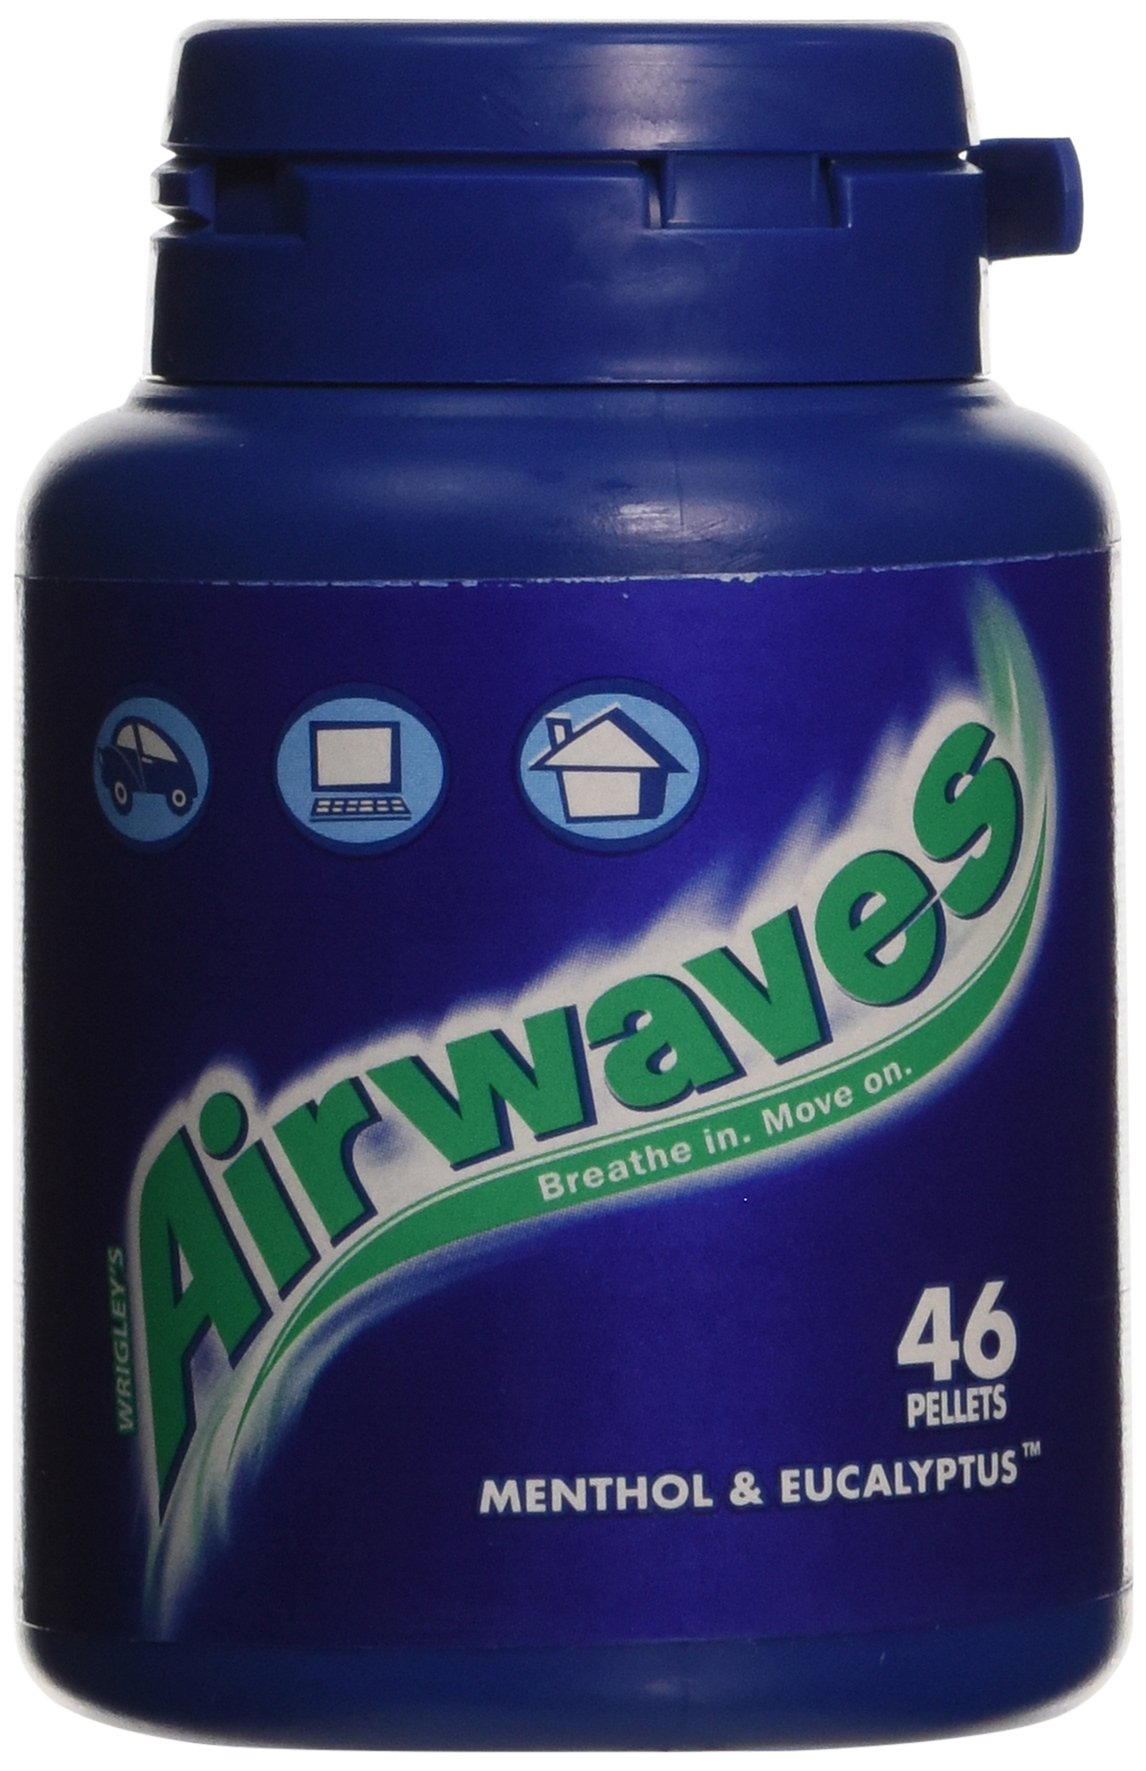 Wrigley's Airwaves Menthol & Eucalyptus Chewing Gum 46 Pieces (Pack of 6)